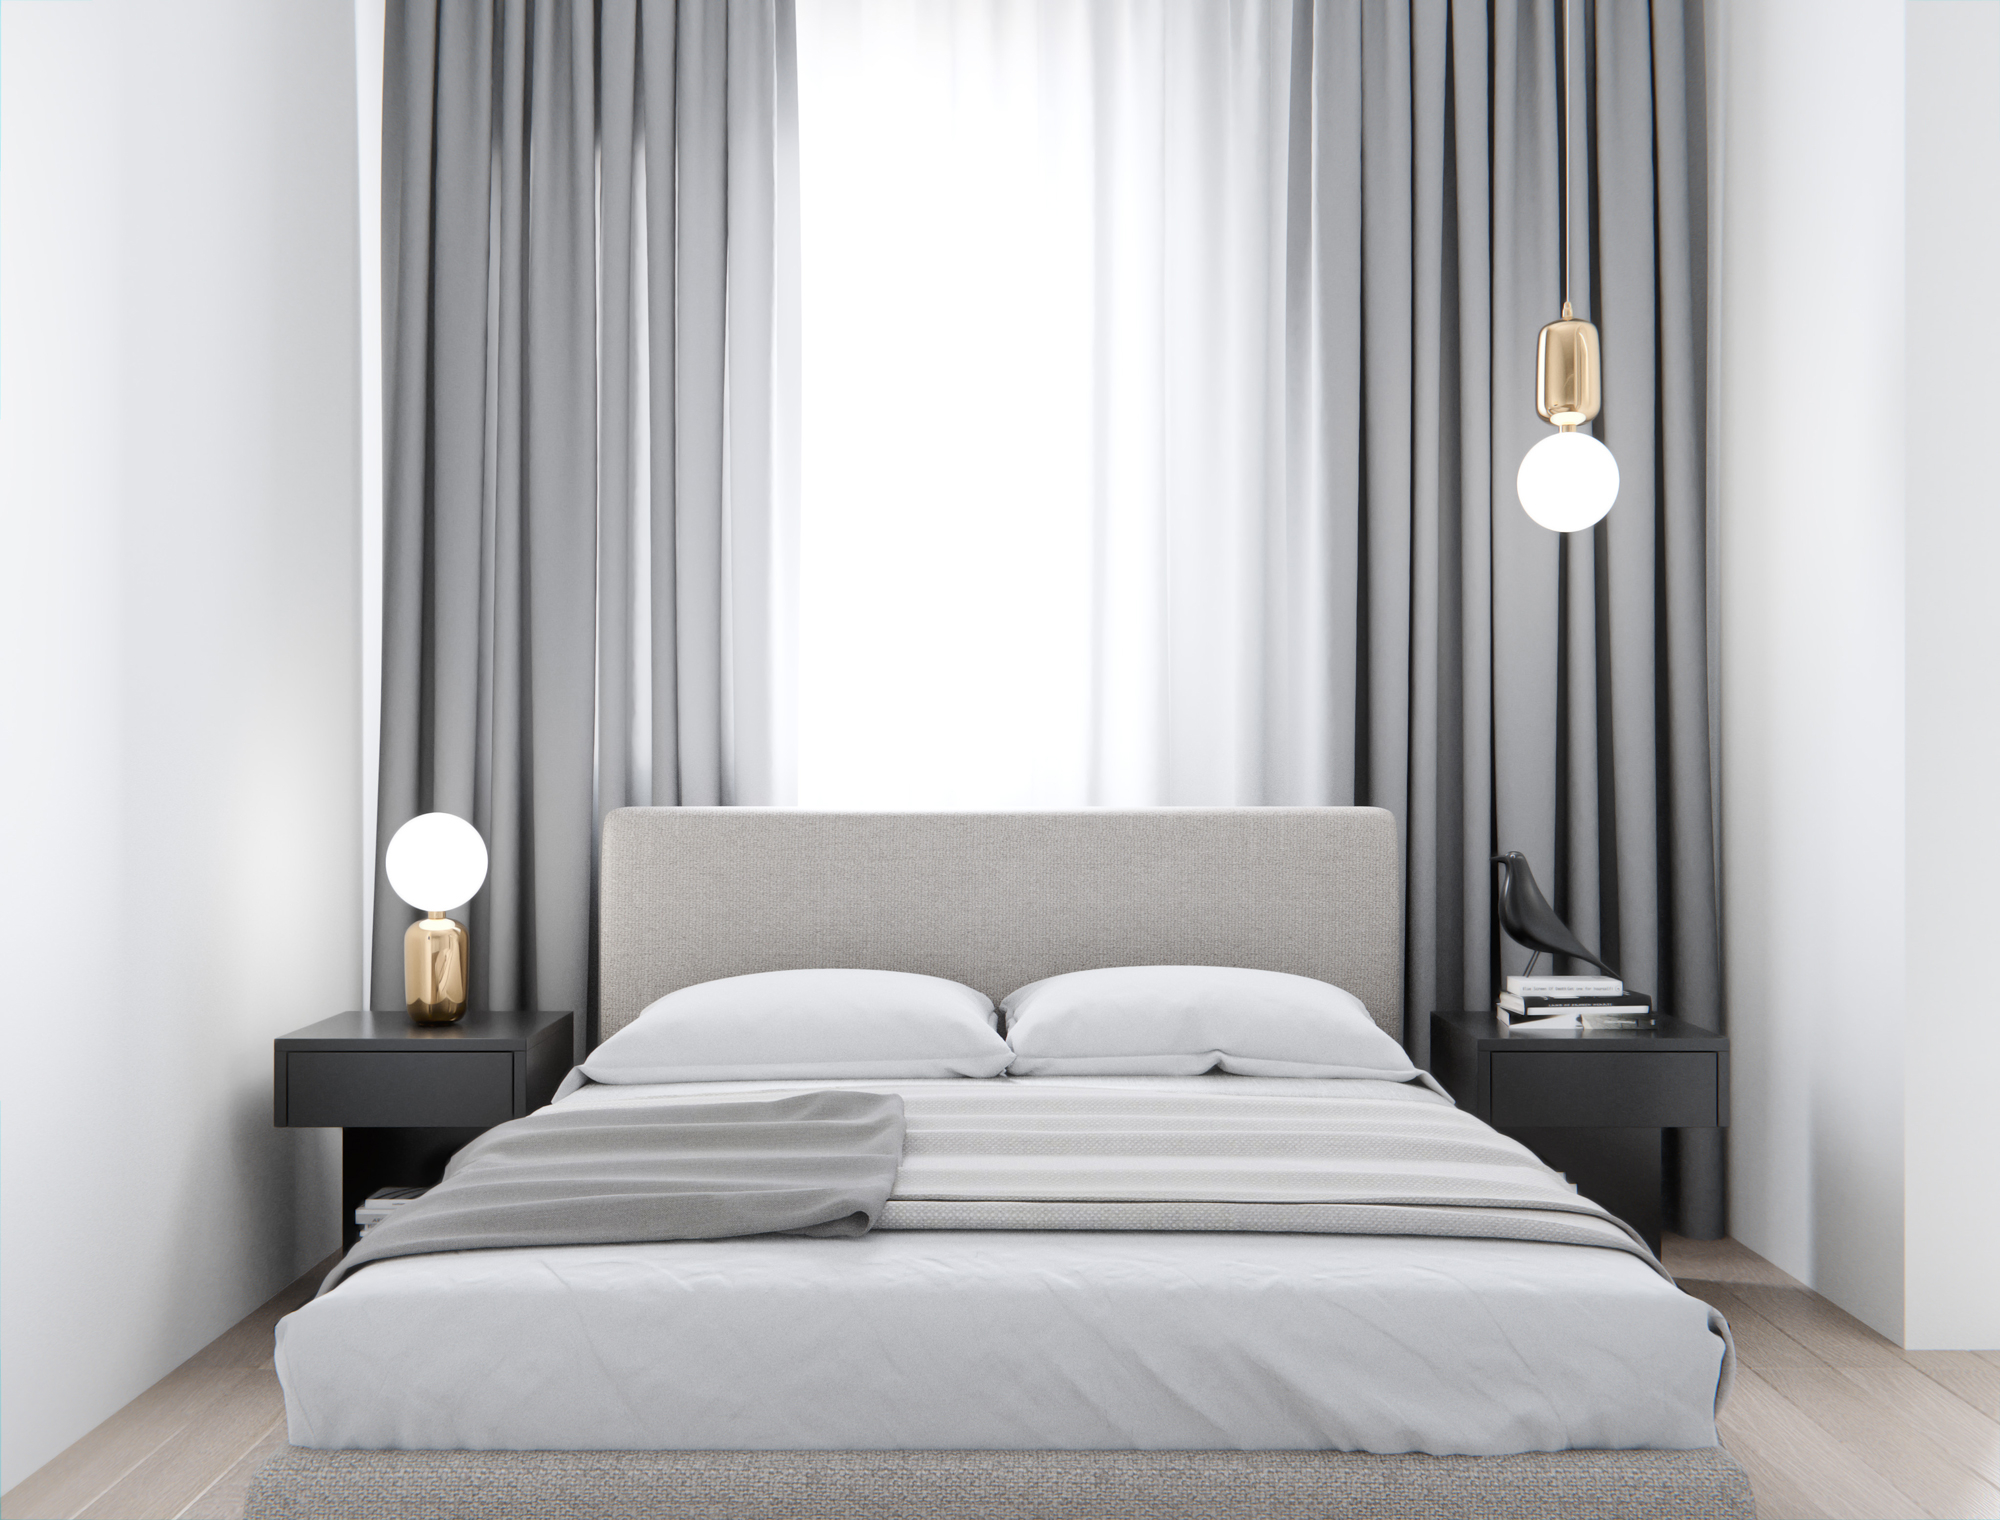 Bedroom Ideas 52 Modern Design Ideas For Your Bedroom The Luxpad pertaining to 15 Genius Concepts of How to Makeover Modern Bedrooms Pictures